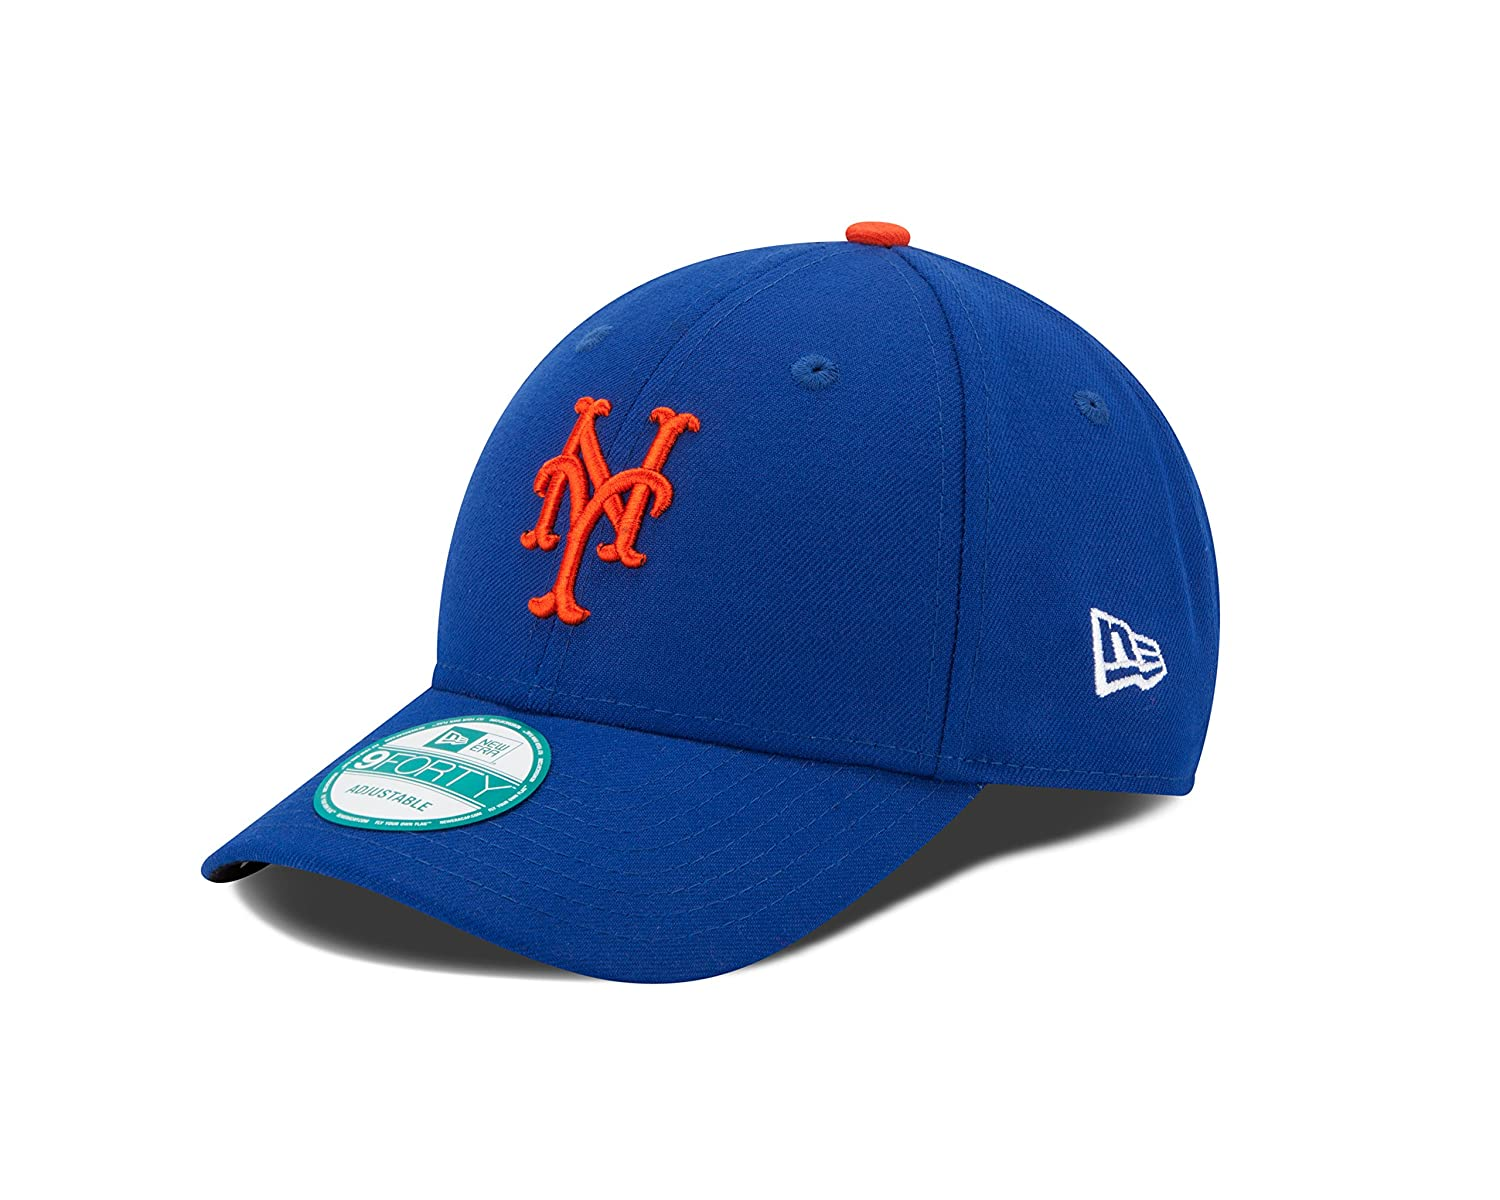 Casquette 9Forty MLB NY Mets New Era casquette MLB Cap couleur Bleu taille  OSFA 10047537 fb9621b1e03